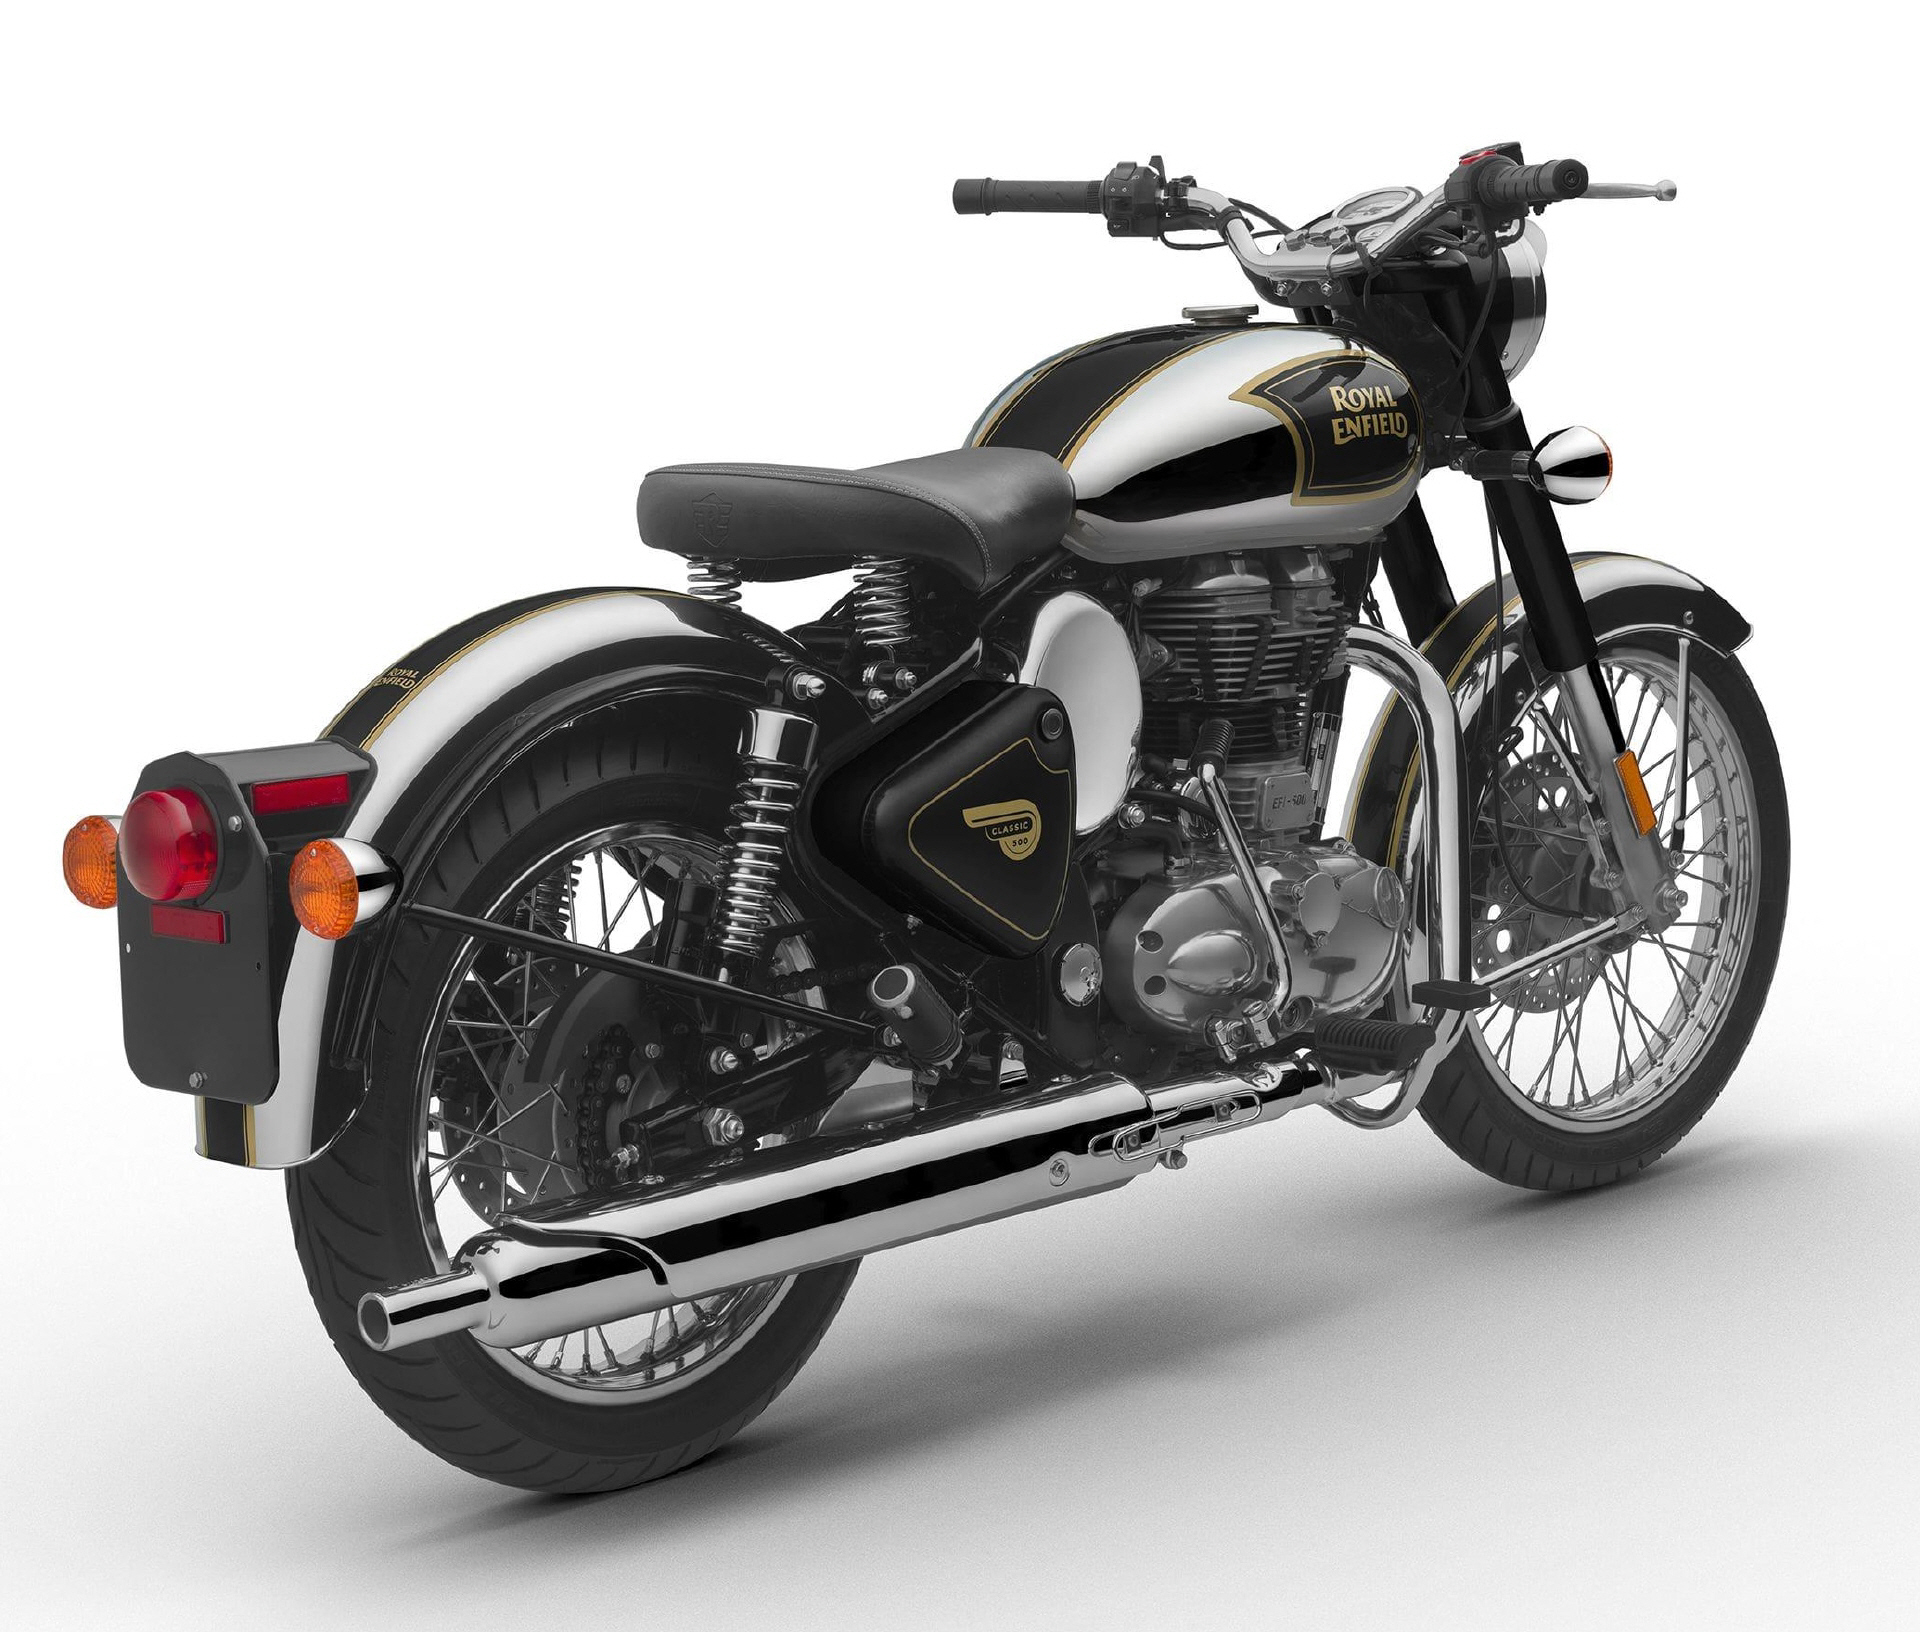 royalenfield_classic_chrome_black_01jpg